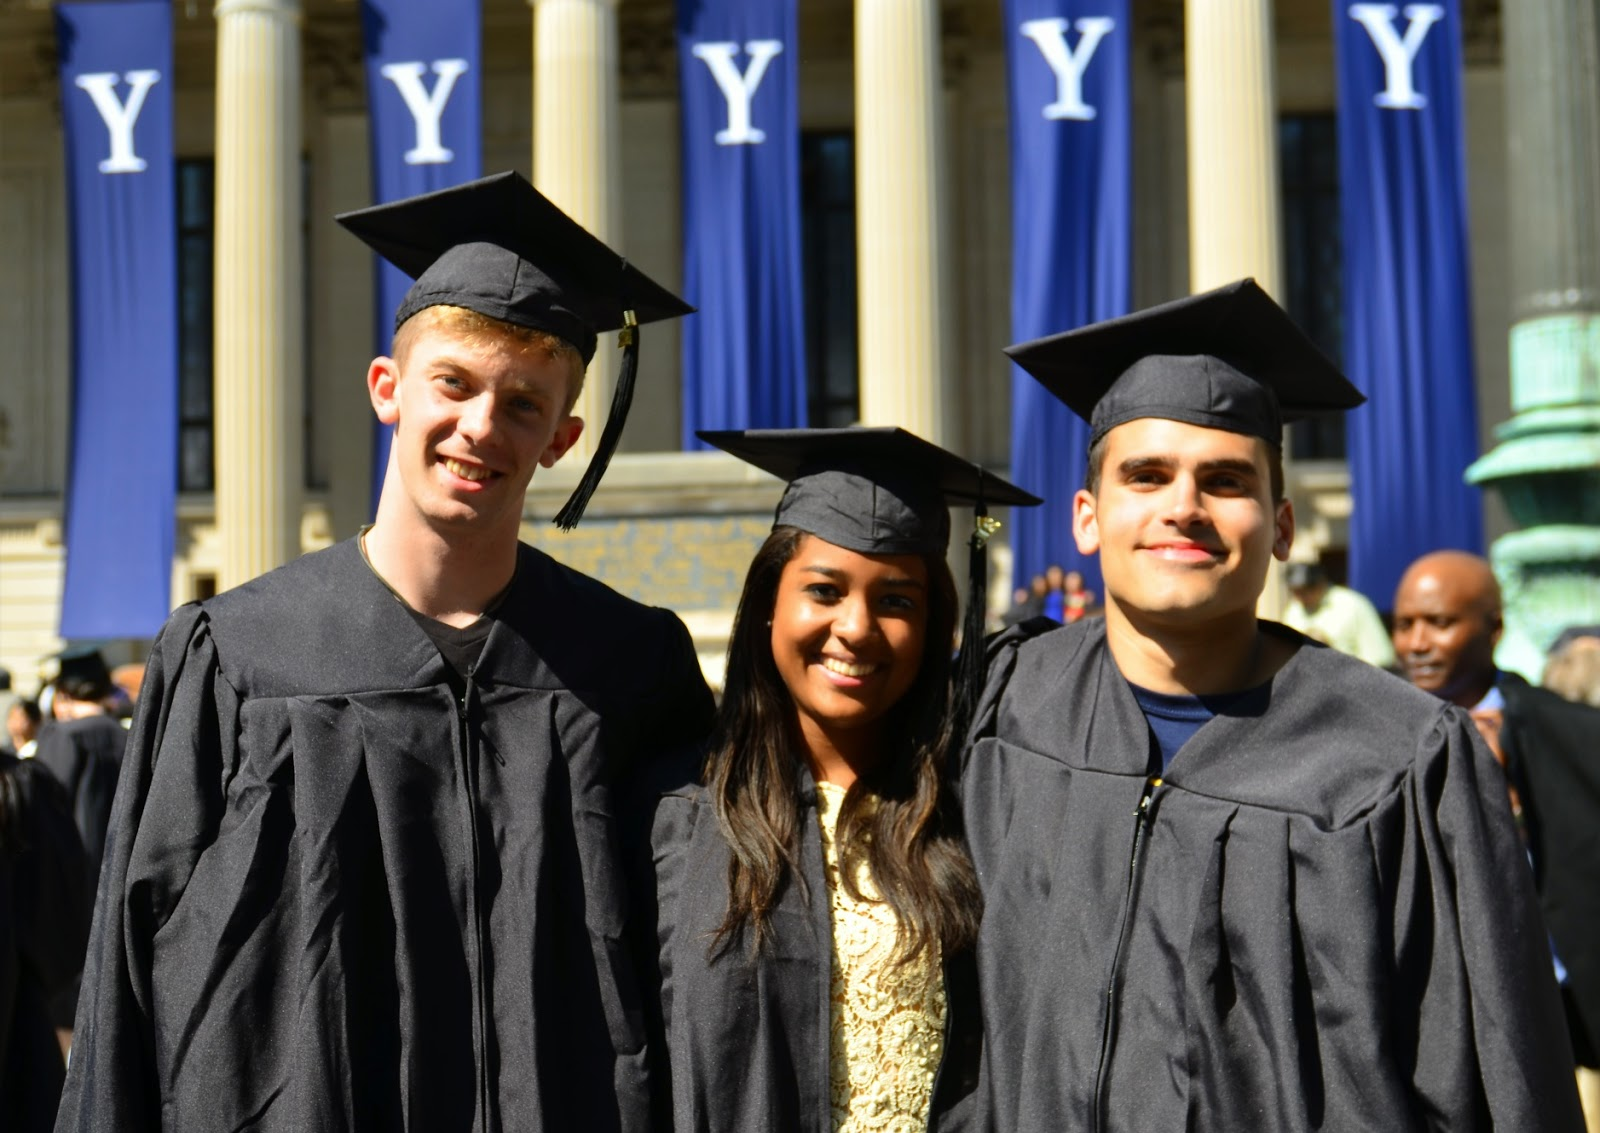 ParadoxUganda: Yale Graduation, Part One: Parties and Baccalaureate